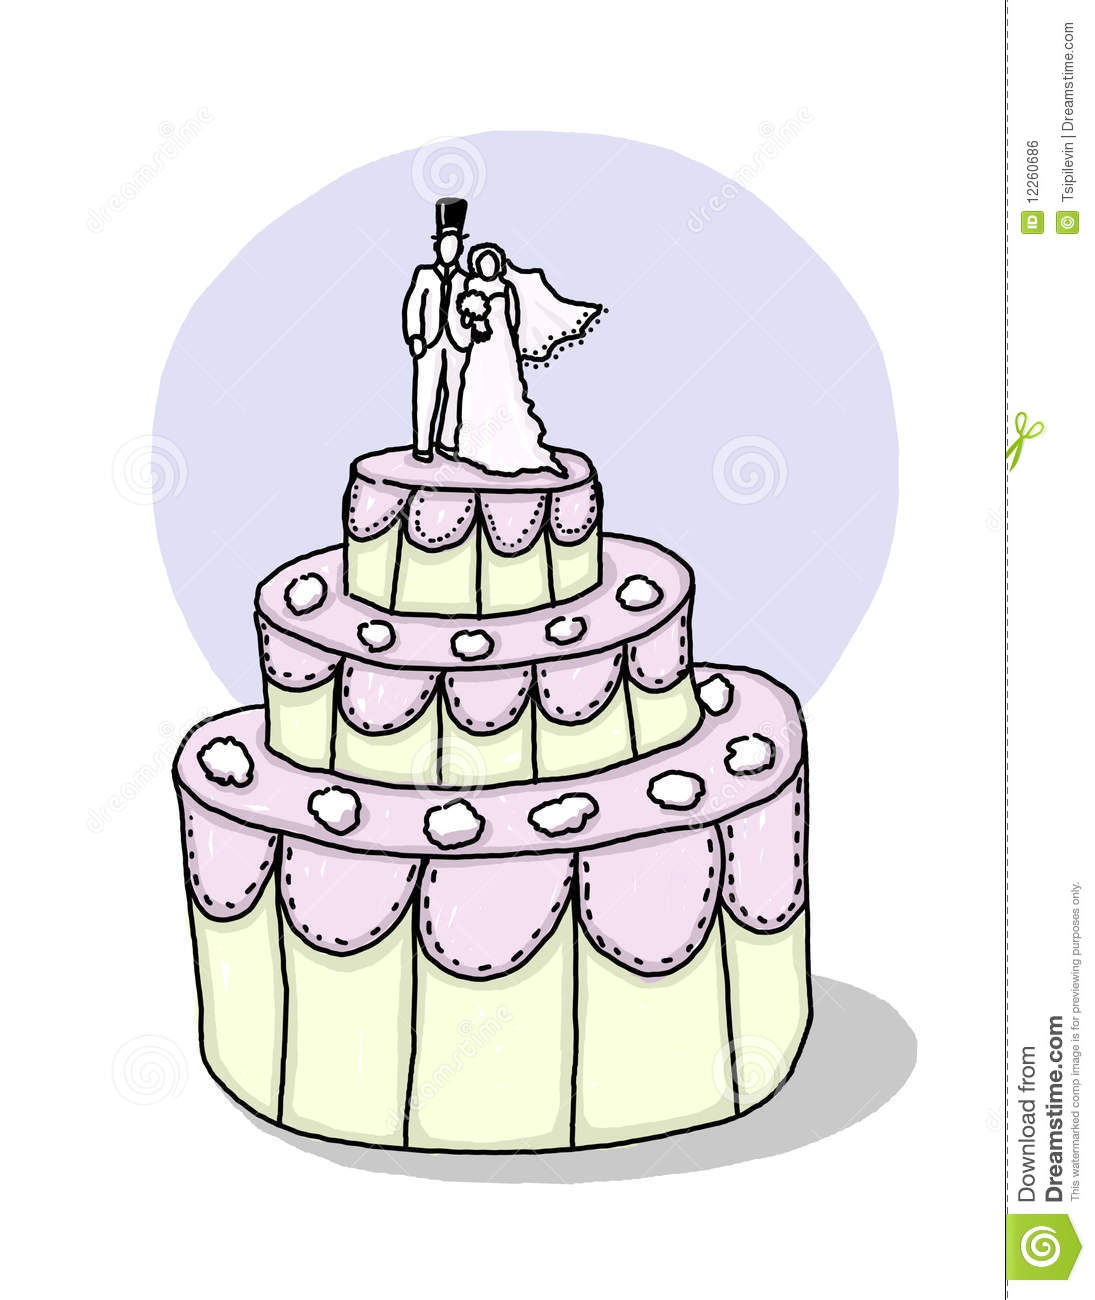 cartoon picture of a wedding cake wedding cake illustration stock illustration illustration 12418